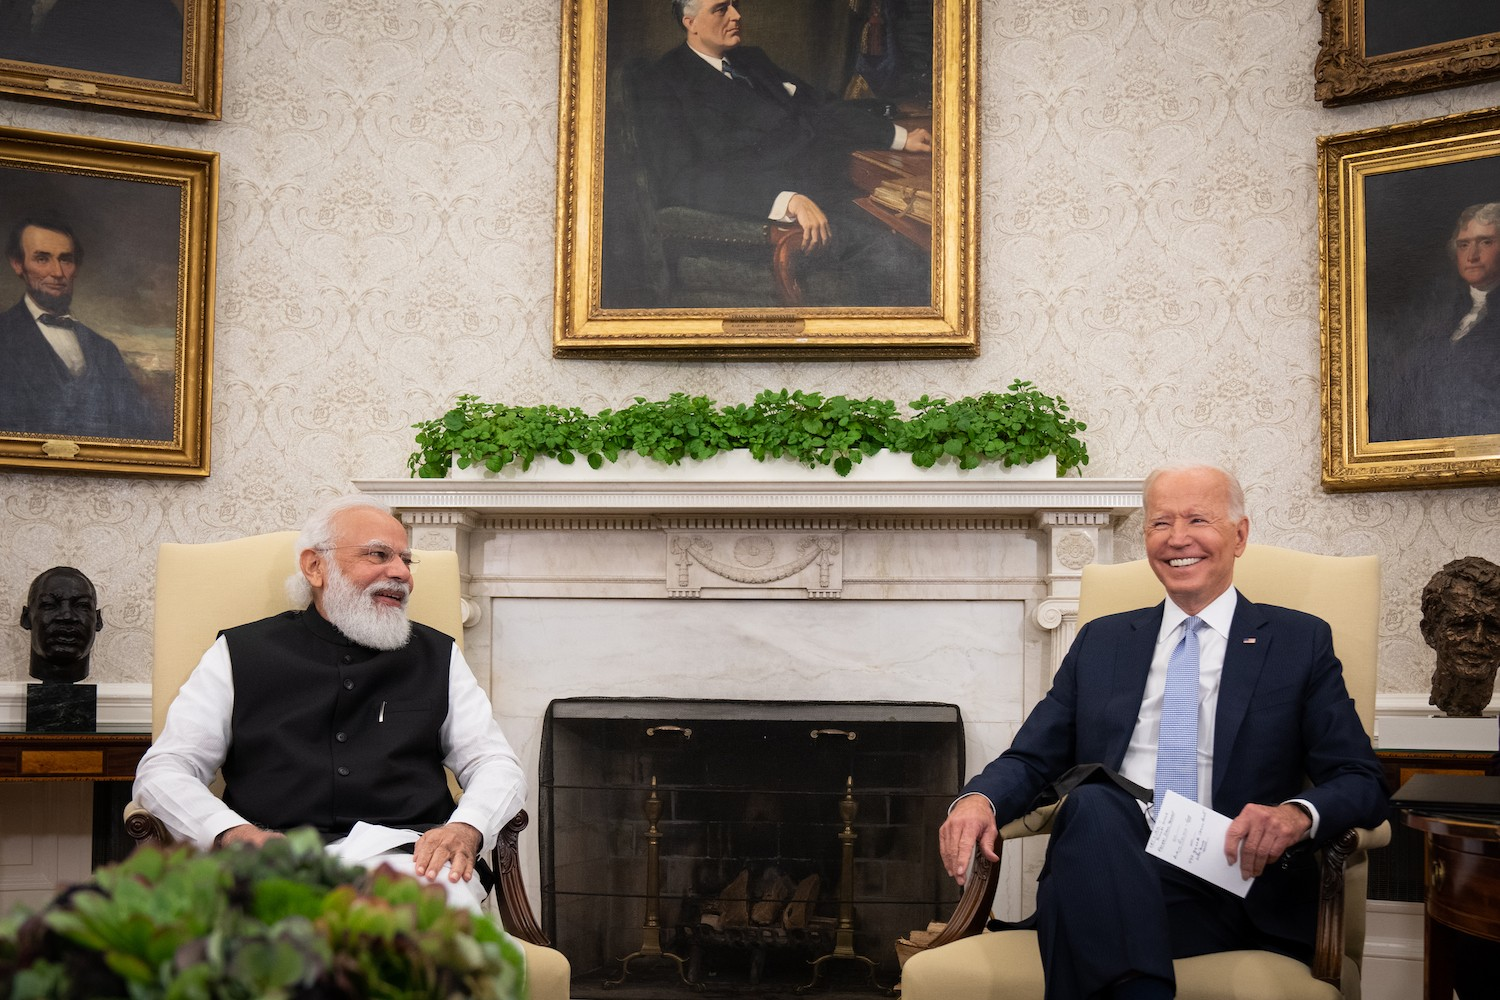 WASHINGTON, DC - SEPTEMBER 24: U.S. President Joe Biden (R) and Indian Prime Minister Narendra Modi participate in a bilateral meeting in the Oval Office of the White House on September 24, 2021 in Washington, DC. President Biden is hosting a Quad Leaders Summit later today with Prime Minister Modi, Australian Prime Minister Scott Morrison and Japanese Prime Minister Suga Yoshihide. (Photo by Sarahbeth Maney-Pool/Getty Images)